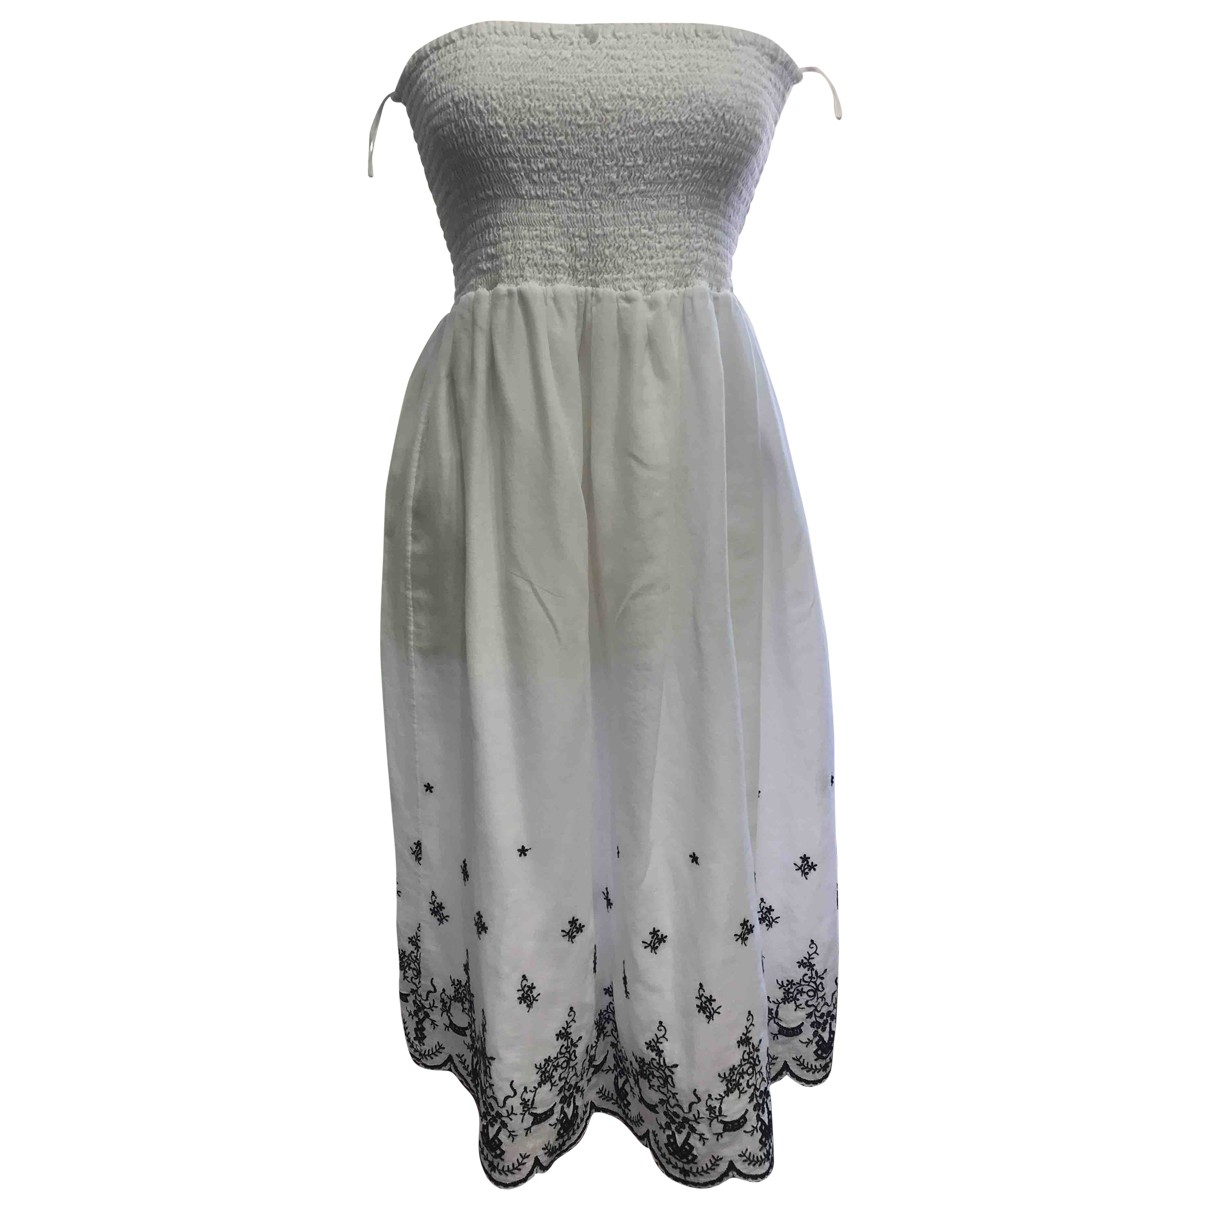 Fabiana Filippi \N White Cotton dress for Women 44 IT